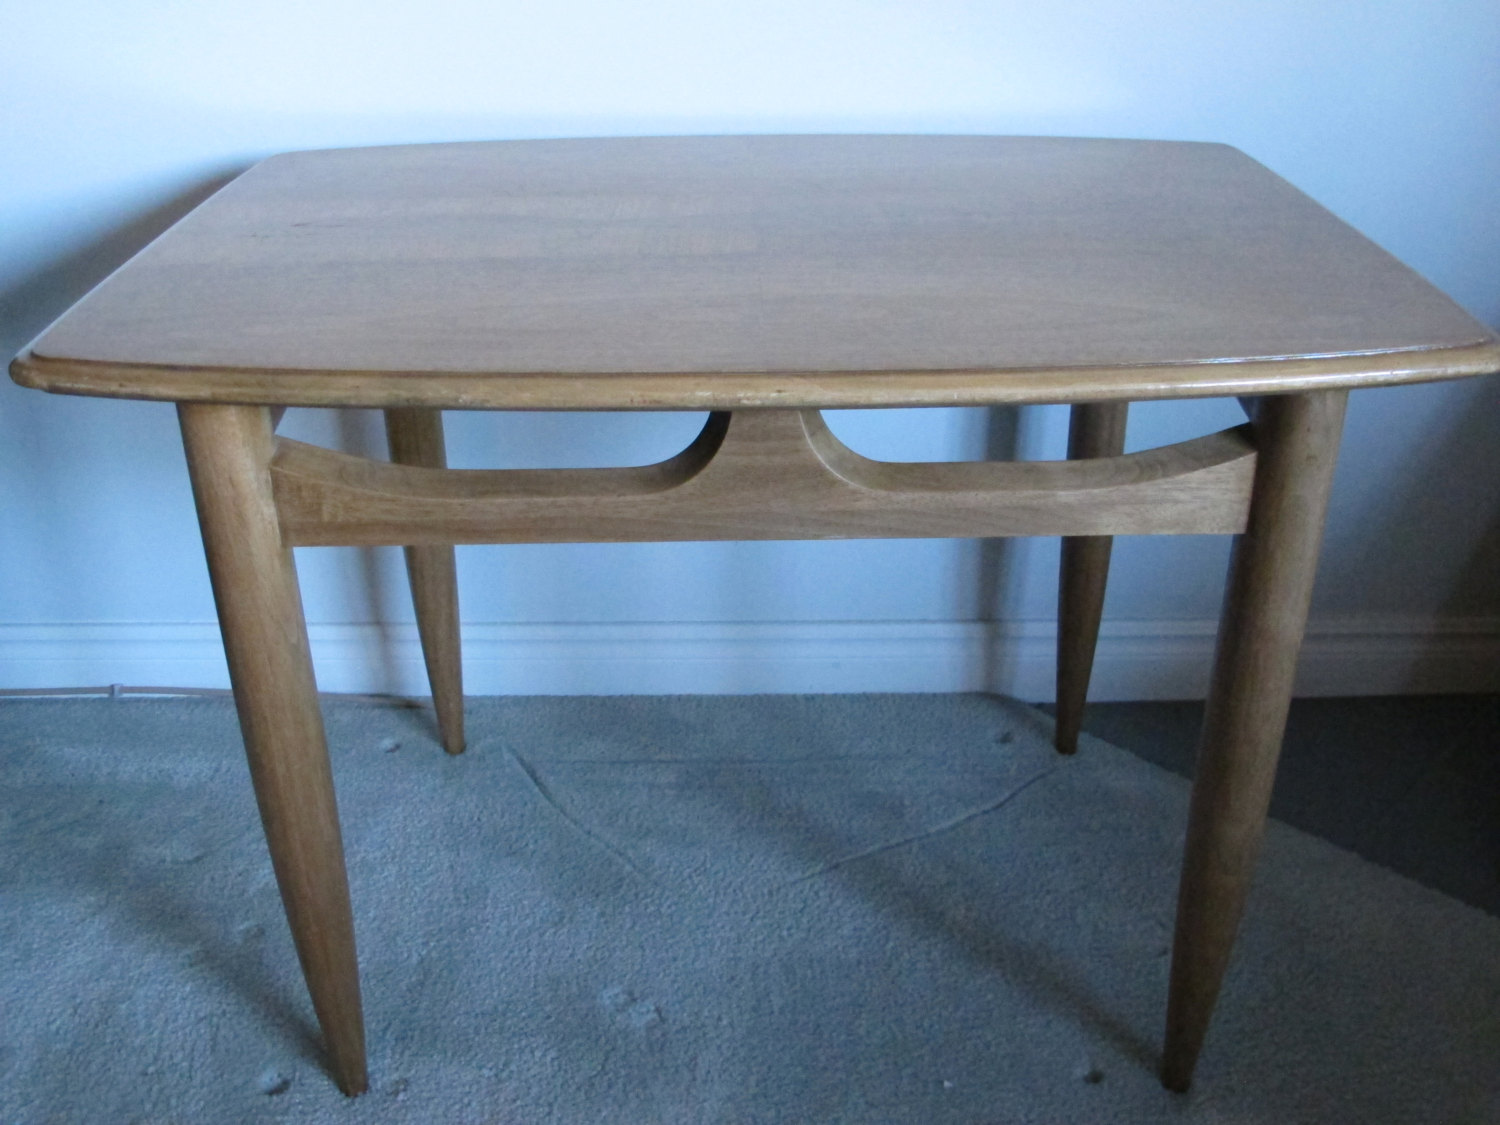 mid century modern end table danish side deilcraft inch accent olcott tray top pier one imports navy linens barn door kitchen cabinets rustic gray coffee stein world patio